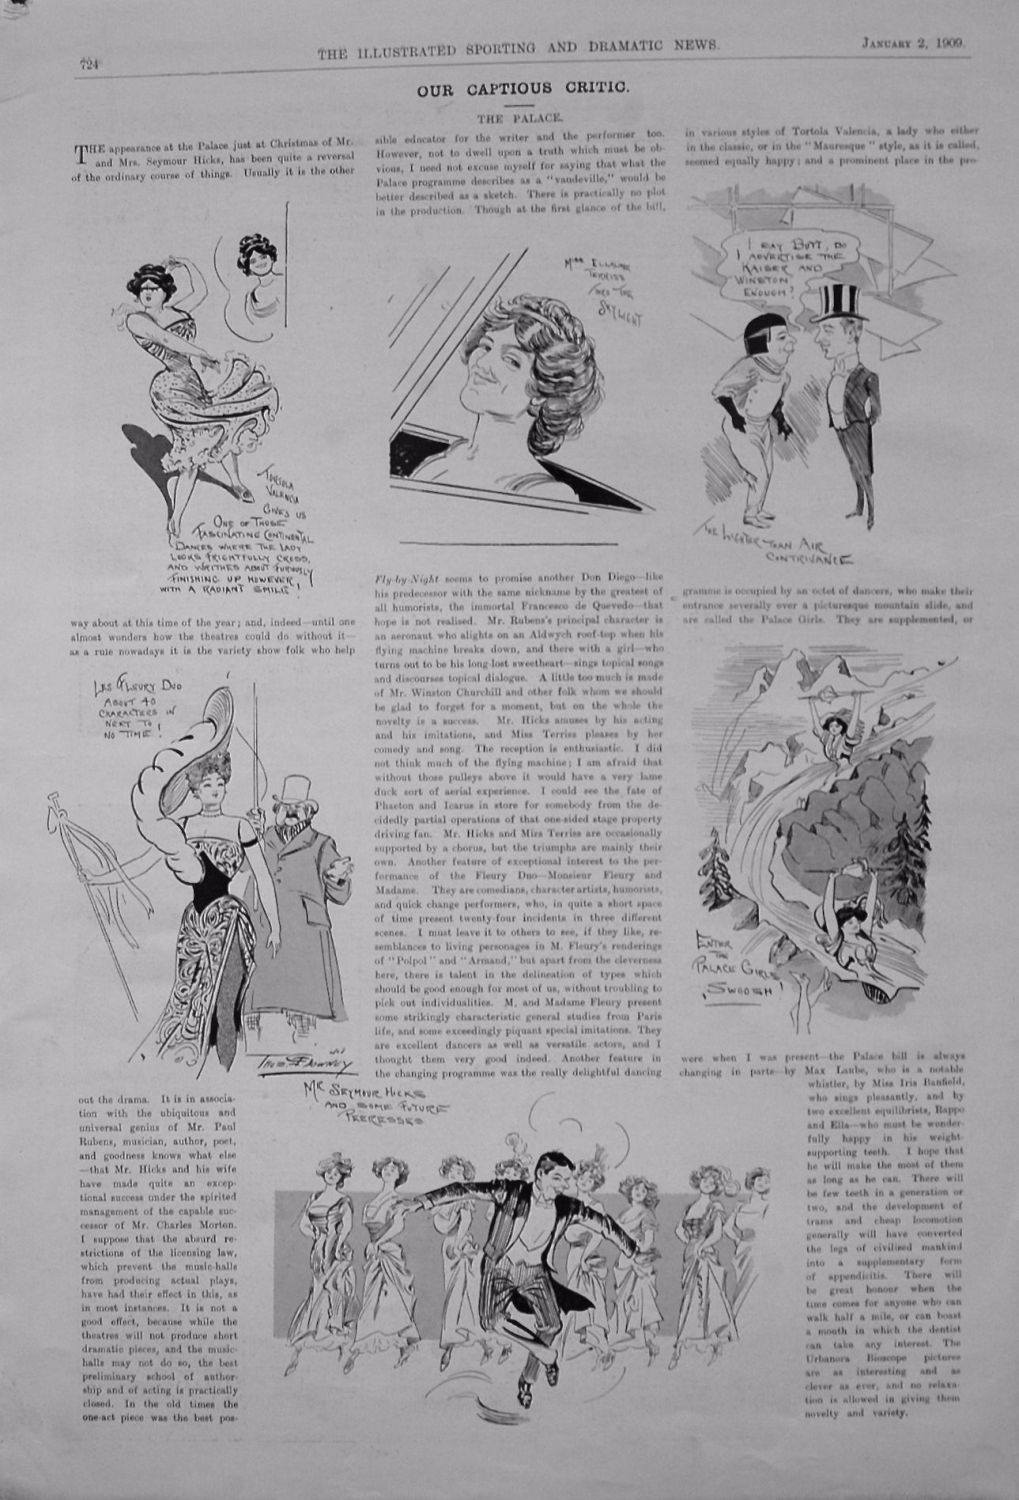 Our Captious Critic. January 2nd 1909.